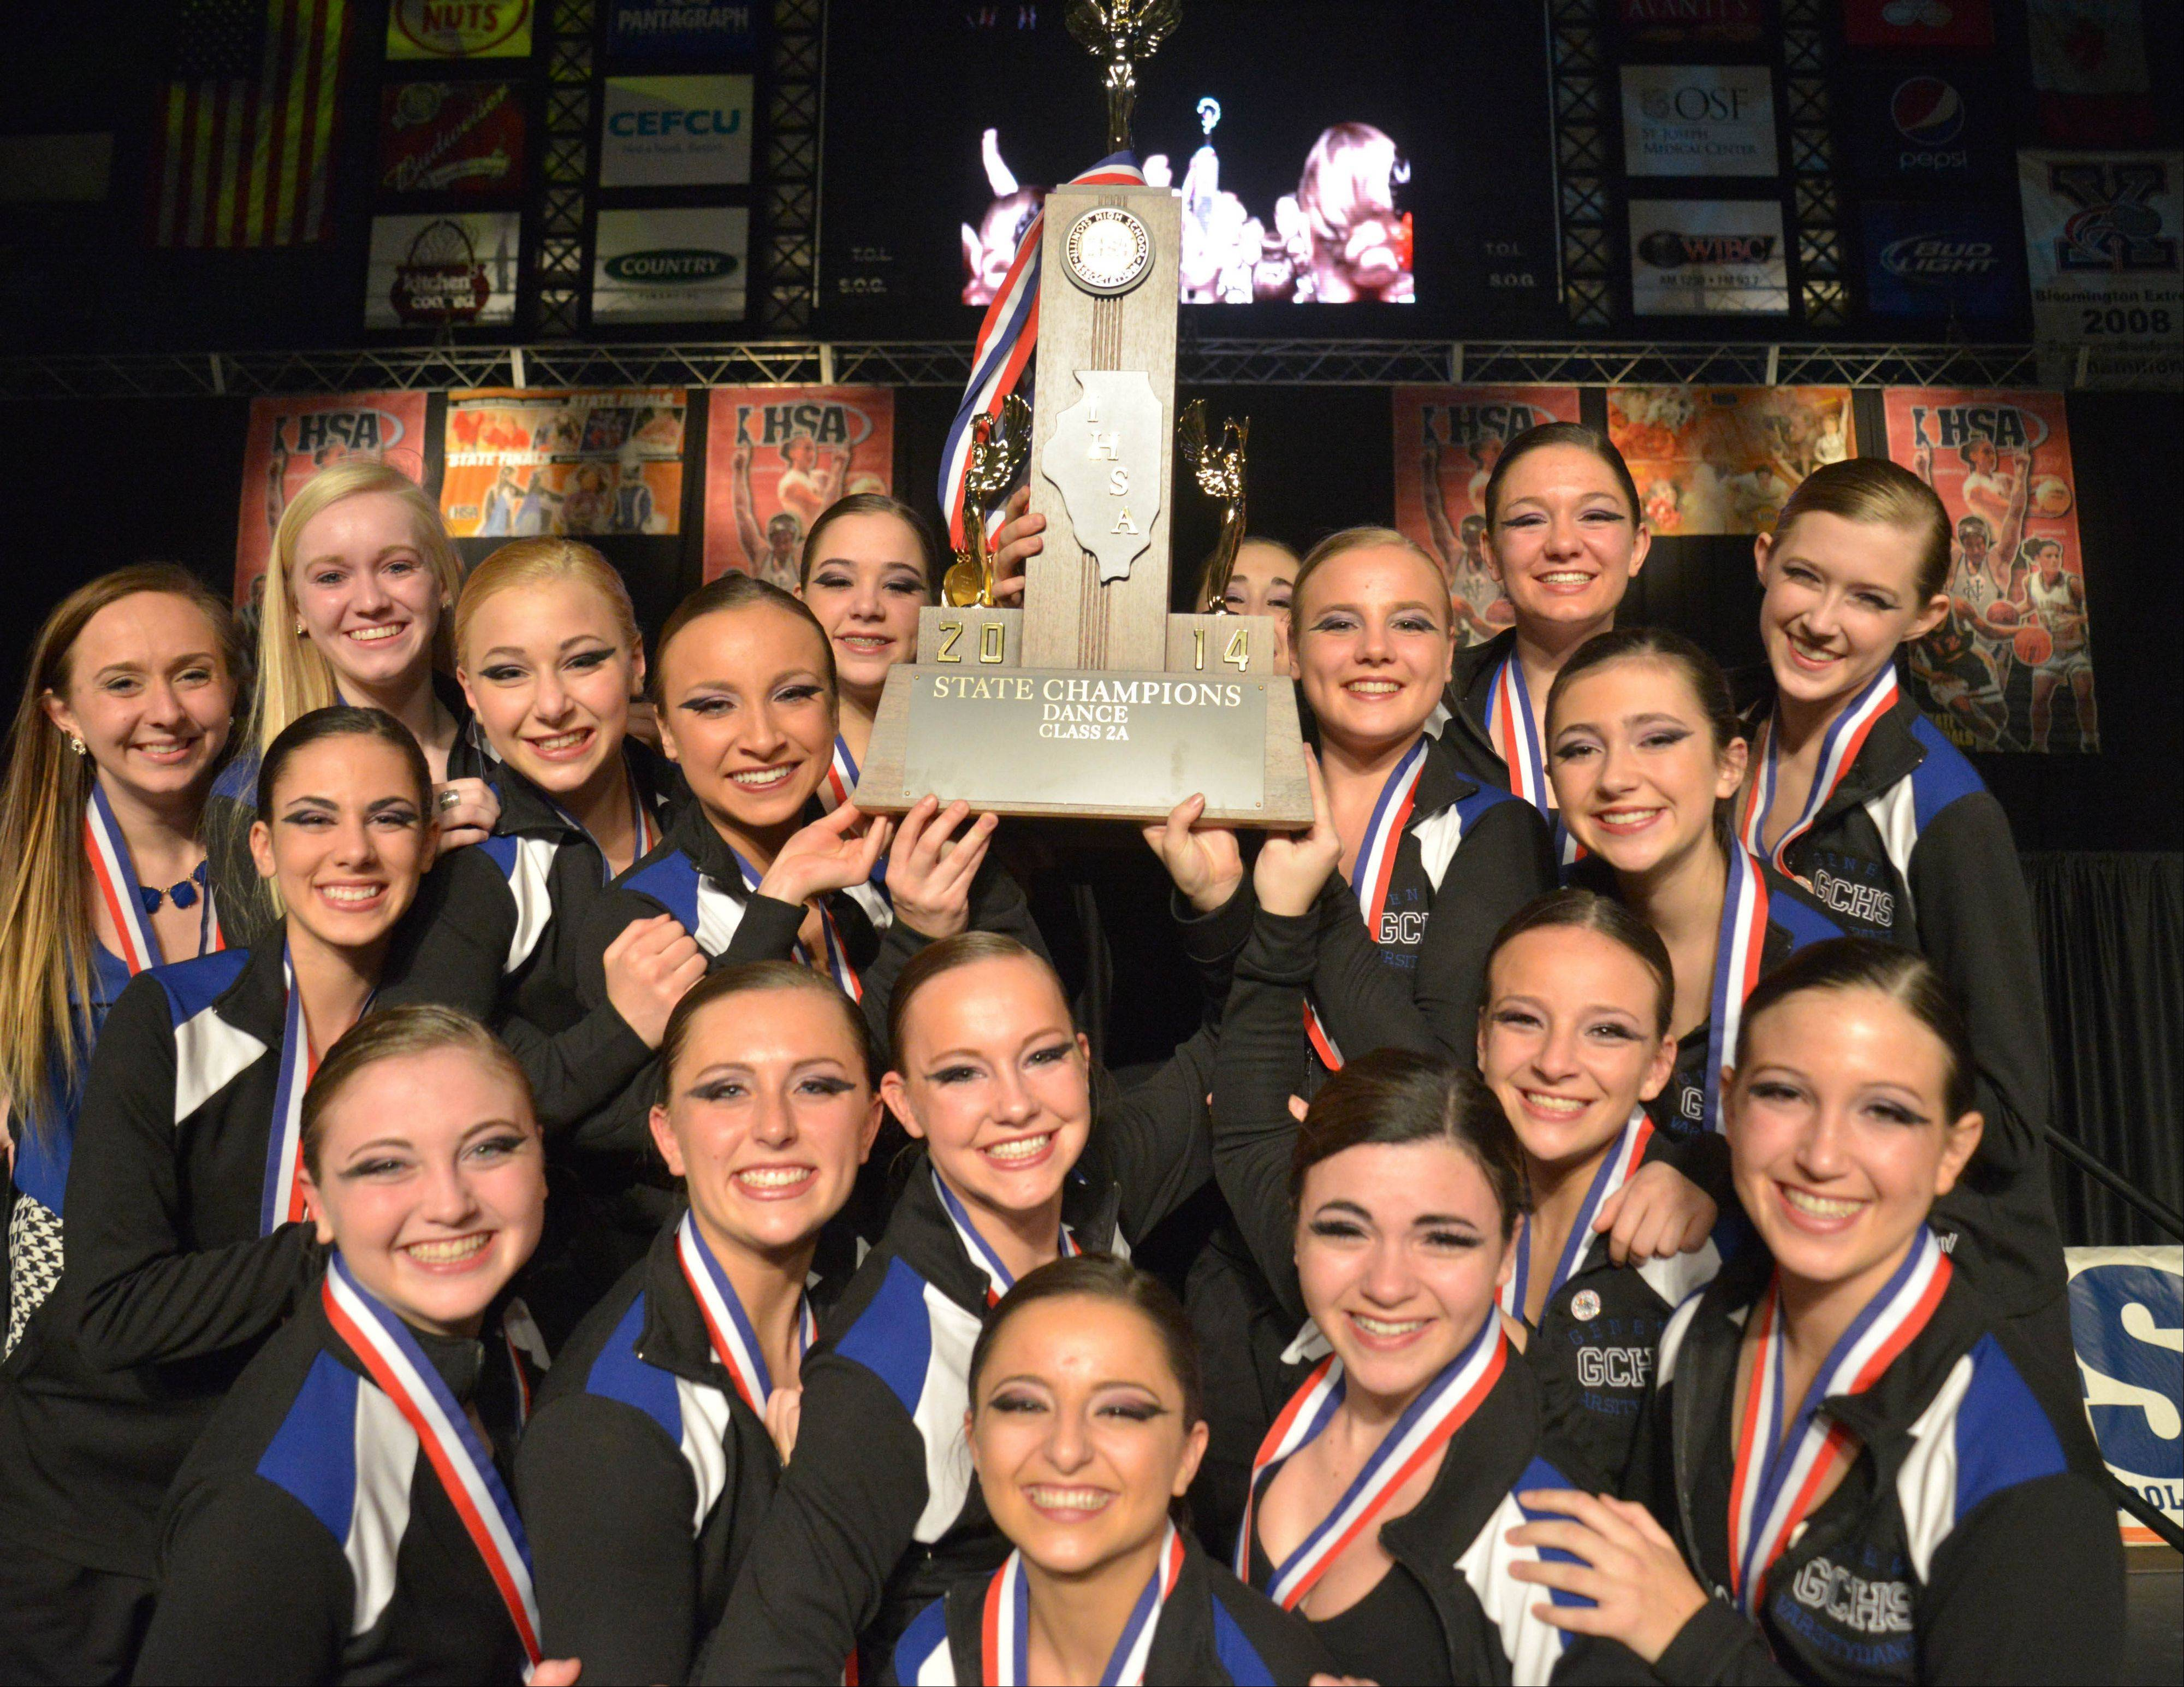 Geneva High School won the 2A IHSA Dance State Final at U.S. Cellular Coliseum in Bloomington Saturday. 90 teams vied for state champion at this event.